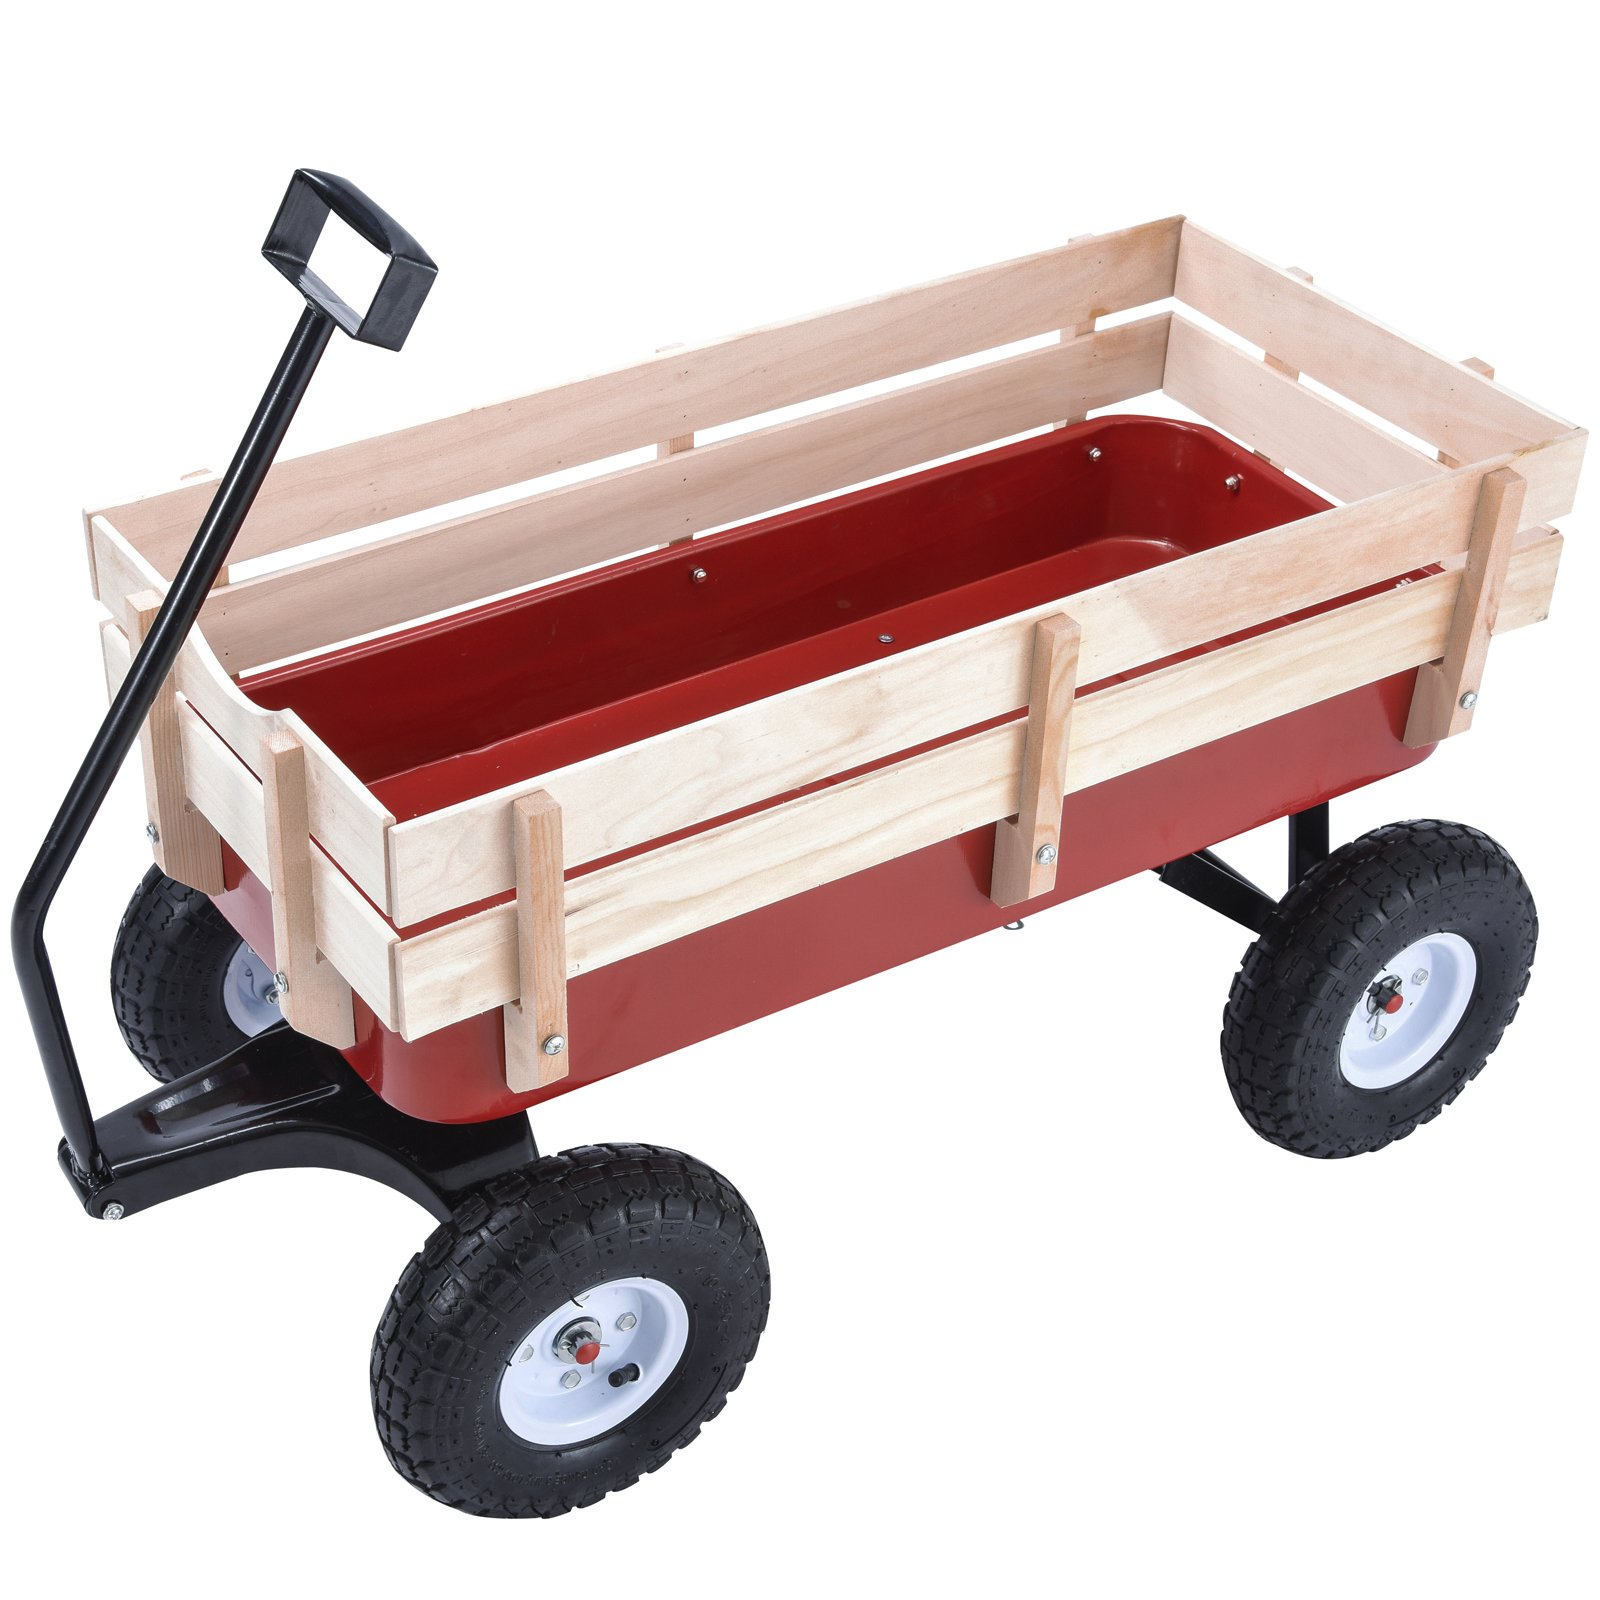 Mecor Garden Cart Outdoor 330lbs All Terrain Pulling Wagon for Kids and Cargo